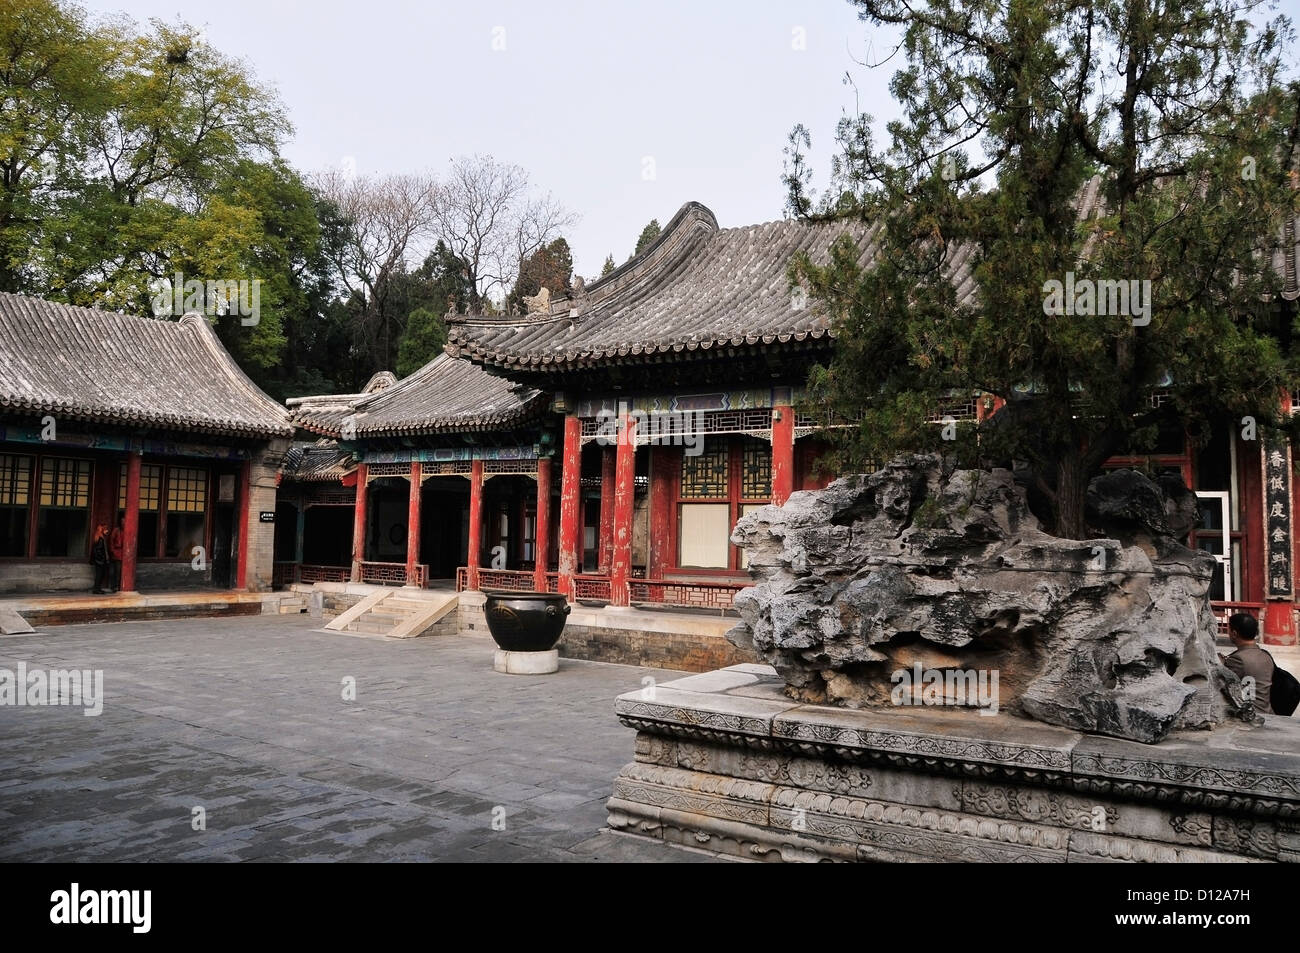 courtyard buildings traditional chinese architecture stock photos